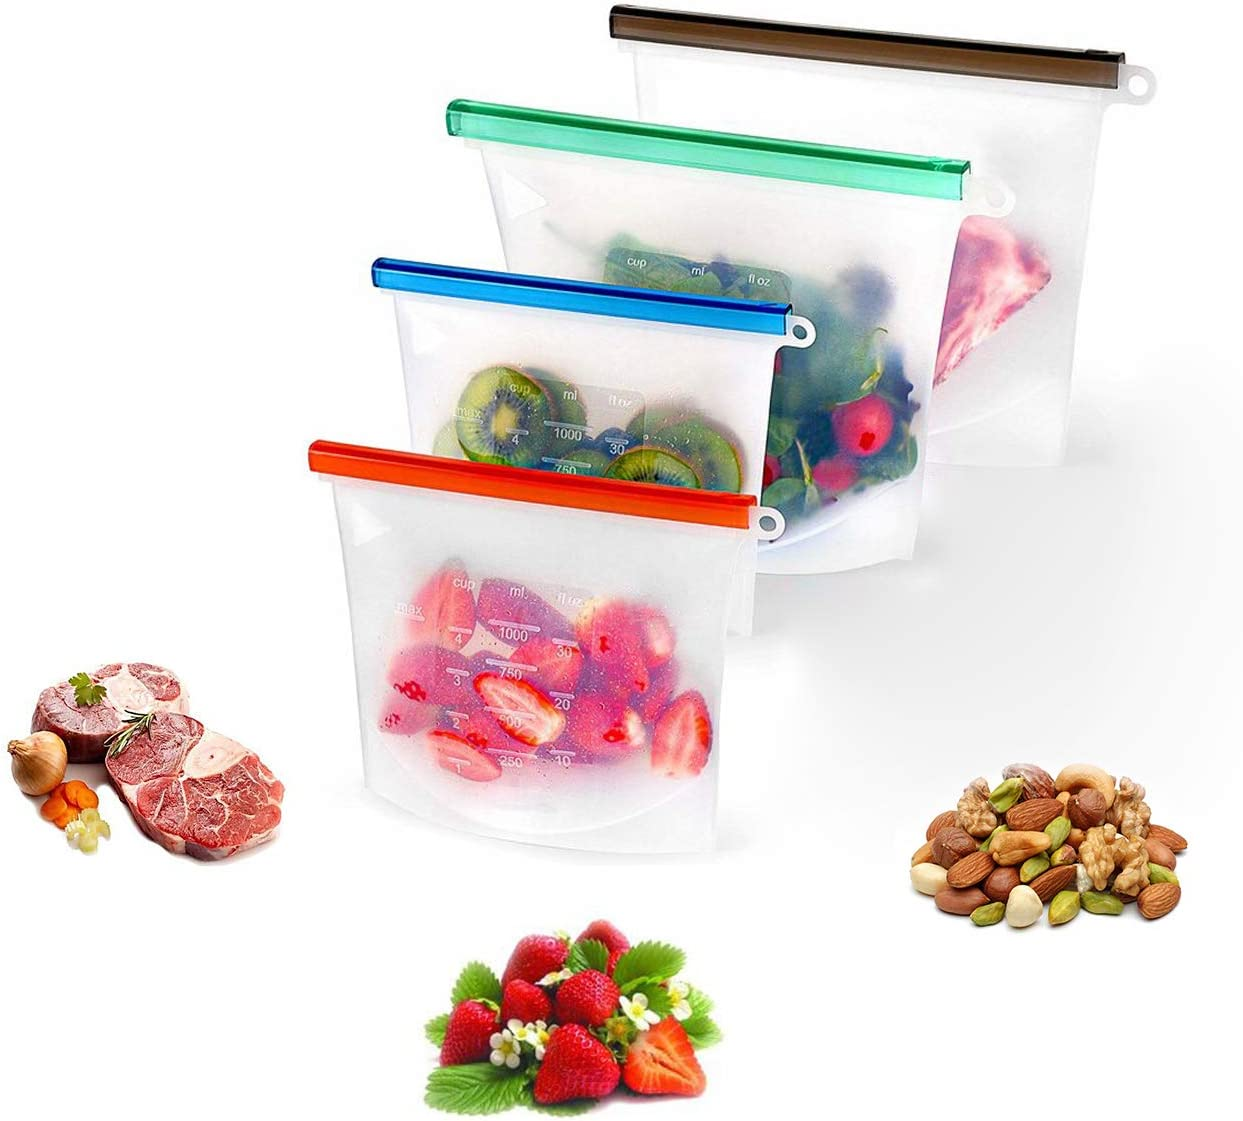 4PCs Reusable Silicone Food Storage Bags,Super Thick Leak-Proof Ziplock Bags,BPA Free Silicone Bags,Silicone Bags for Food Storage,Can be Used to Store Food, Meat, Sandwiches, Fruits, Vegetables, Etc.